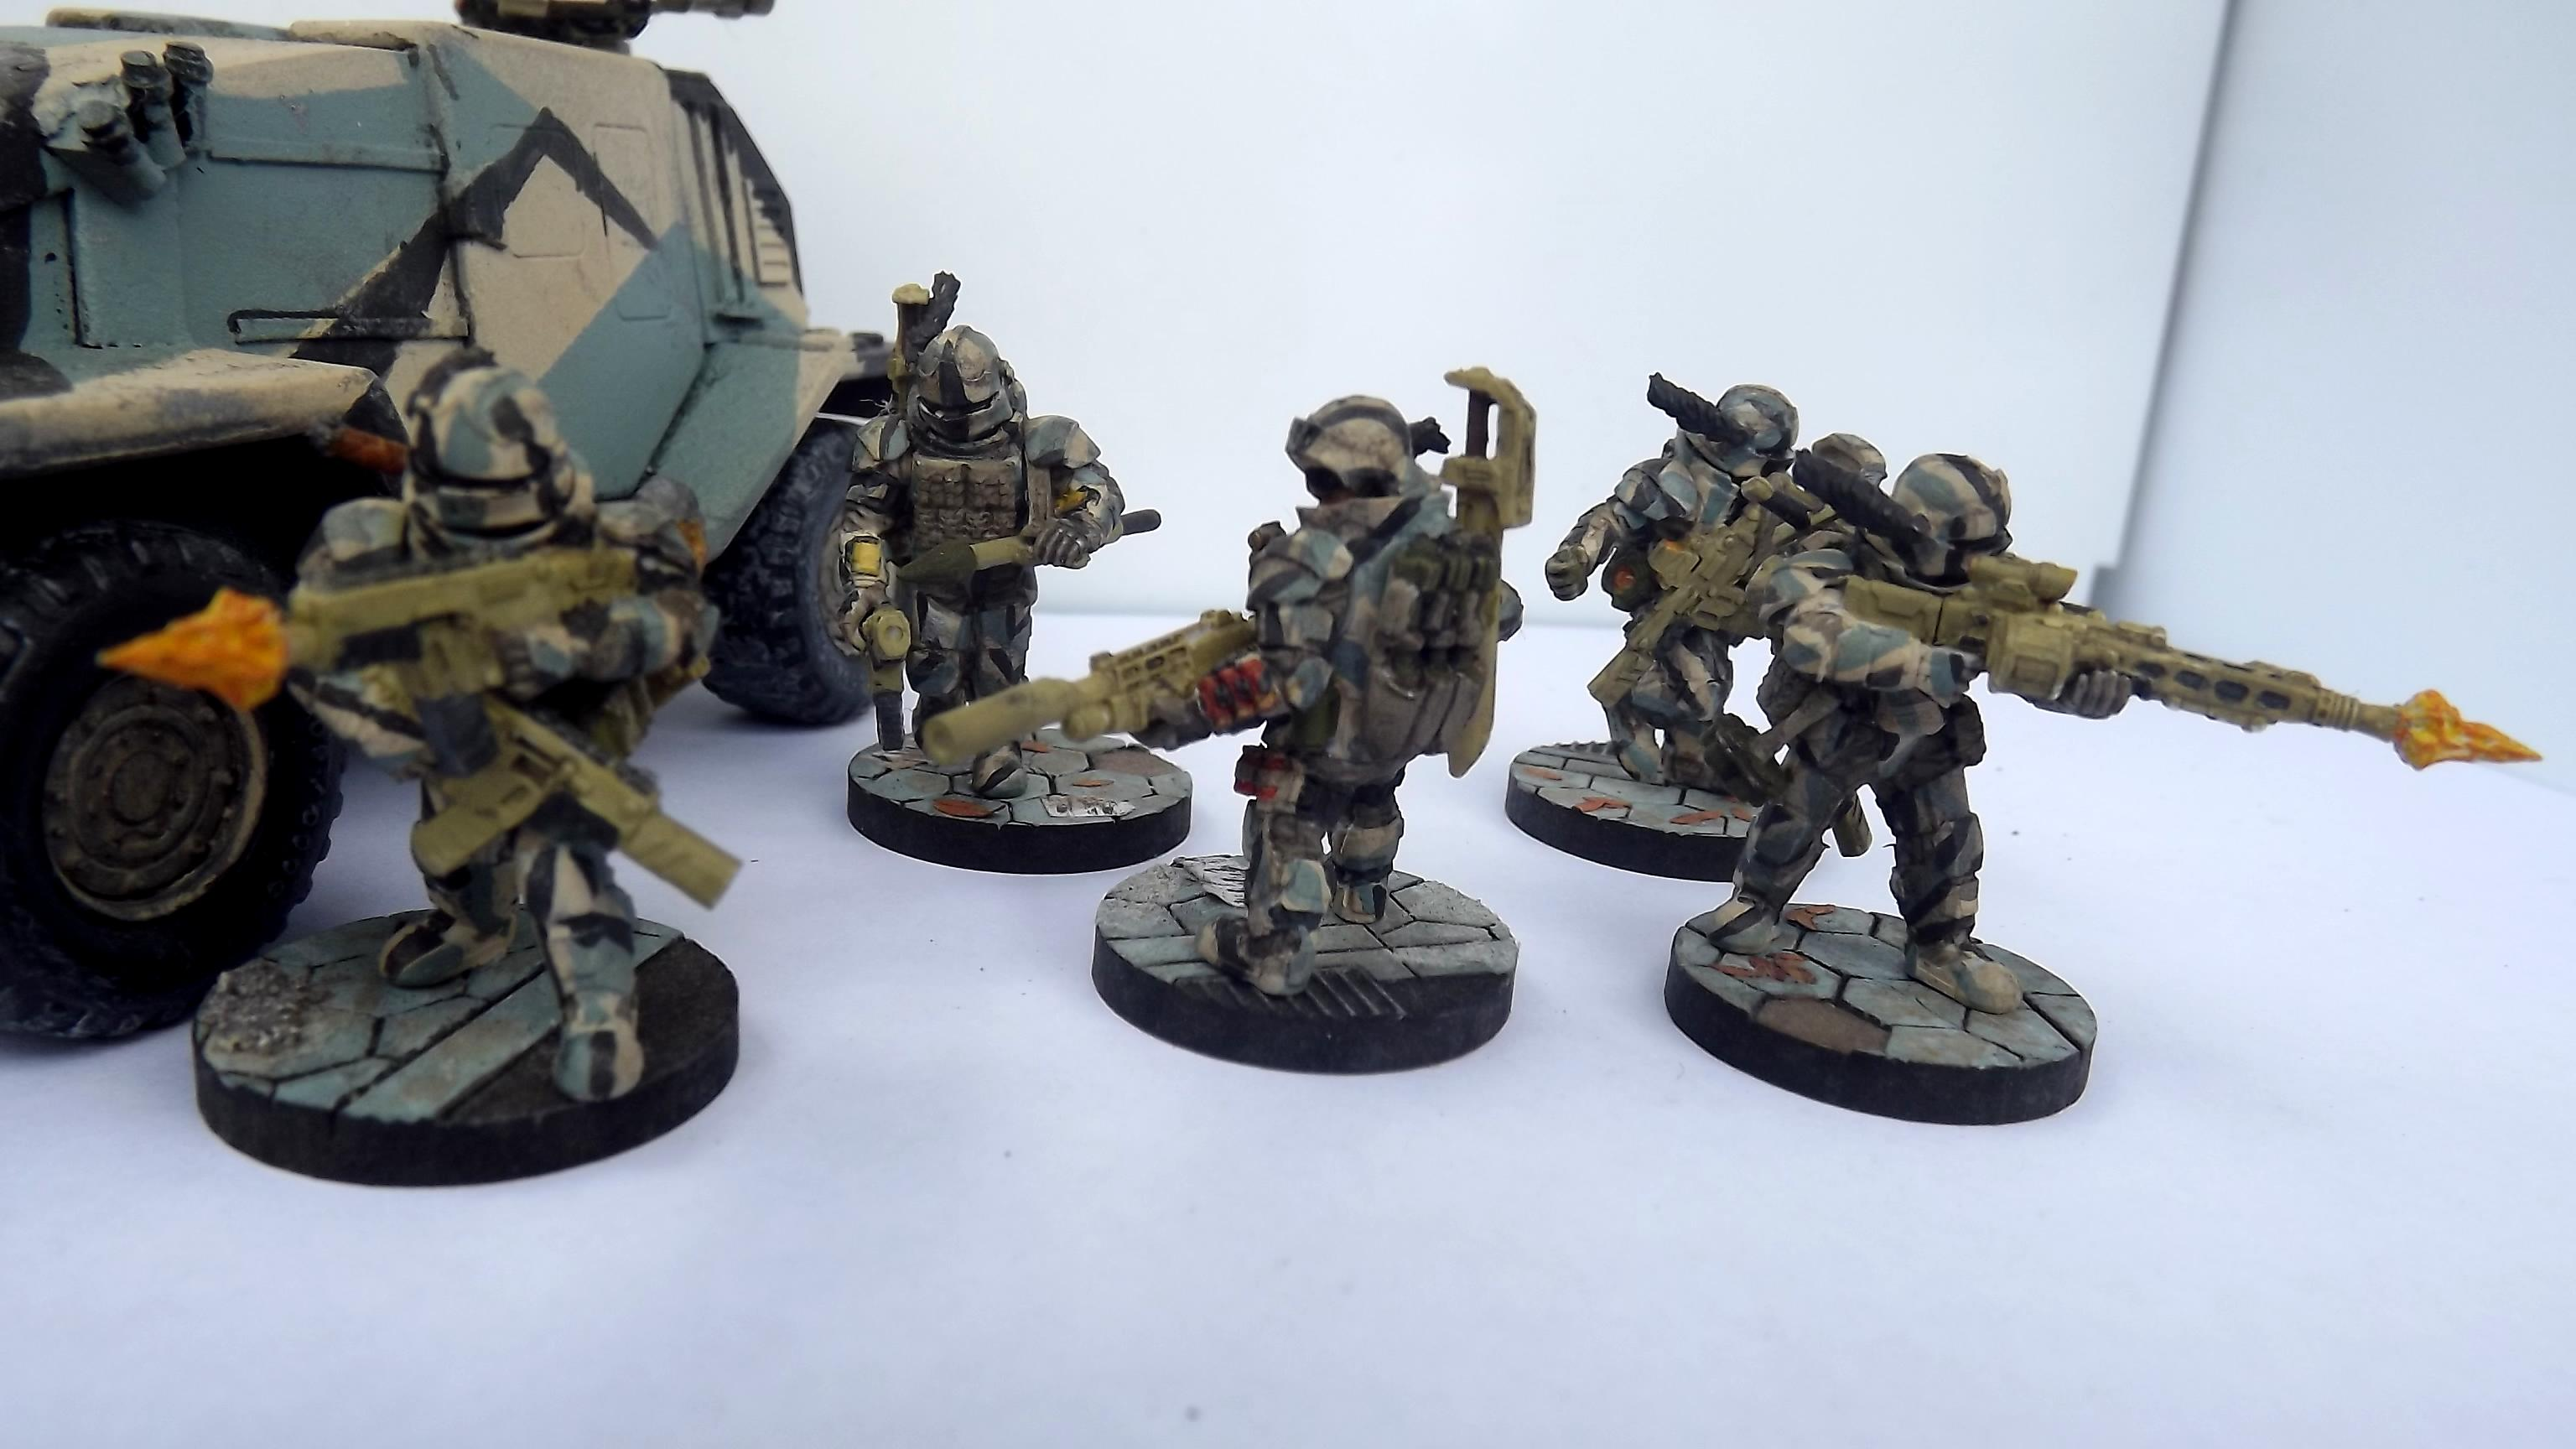 Anvil Industry, Assault Team, Breacher, Carapace Armour, Close Quarters, Commando, Dual Weild, Elite Infantry, Exsplosives, Heavy Infantry, Heavy Stubber, Imperial Guard, Infiltraion, Machinegun, Melee, Mg42, Ordinance, Power Sword, Power Weapon, Rocket Launcher, Rpg7, Shield, Shotgun, Silencer, Special Forces, Specialists, Submachinegun, The Assault Group, Urban, Urban Camoflague, Weapons Specialist